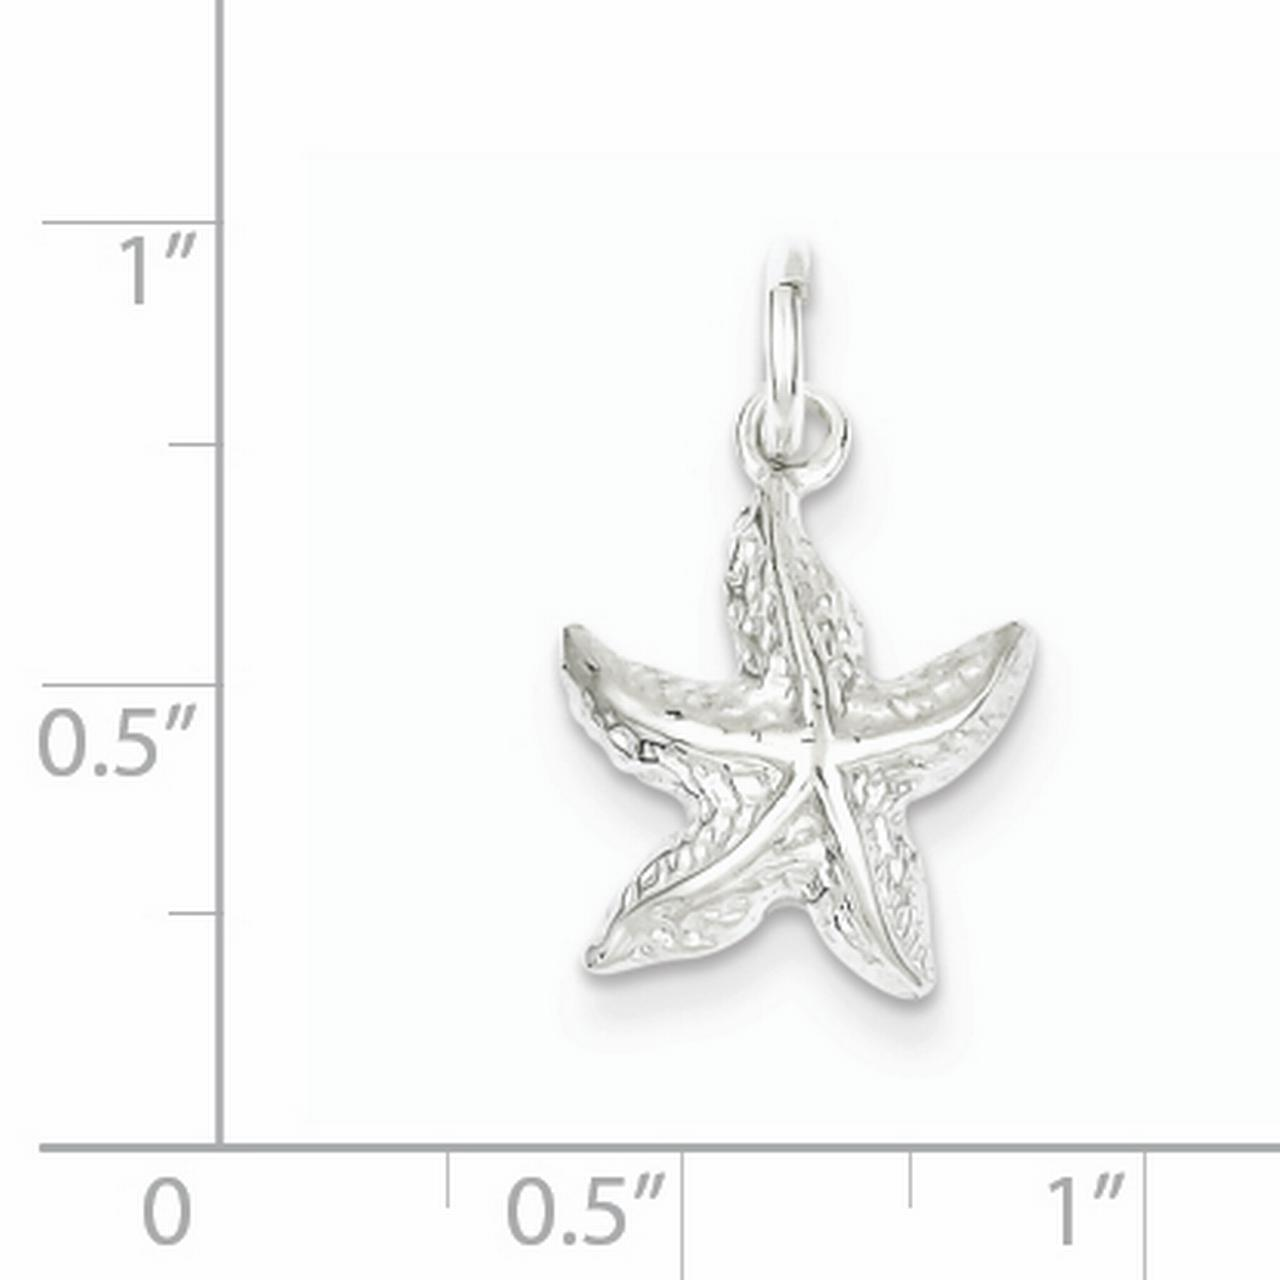 Sterling Silver Starfish Charm QC954 (17mm x 13mm) - image 1 of 2